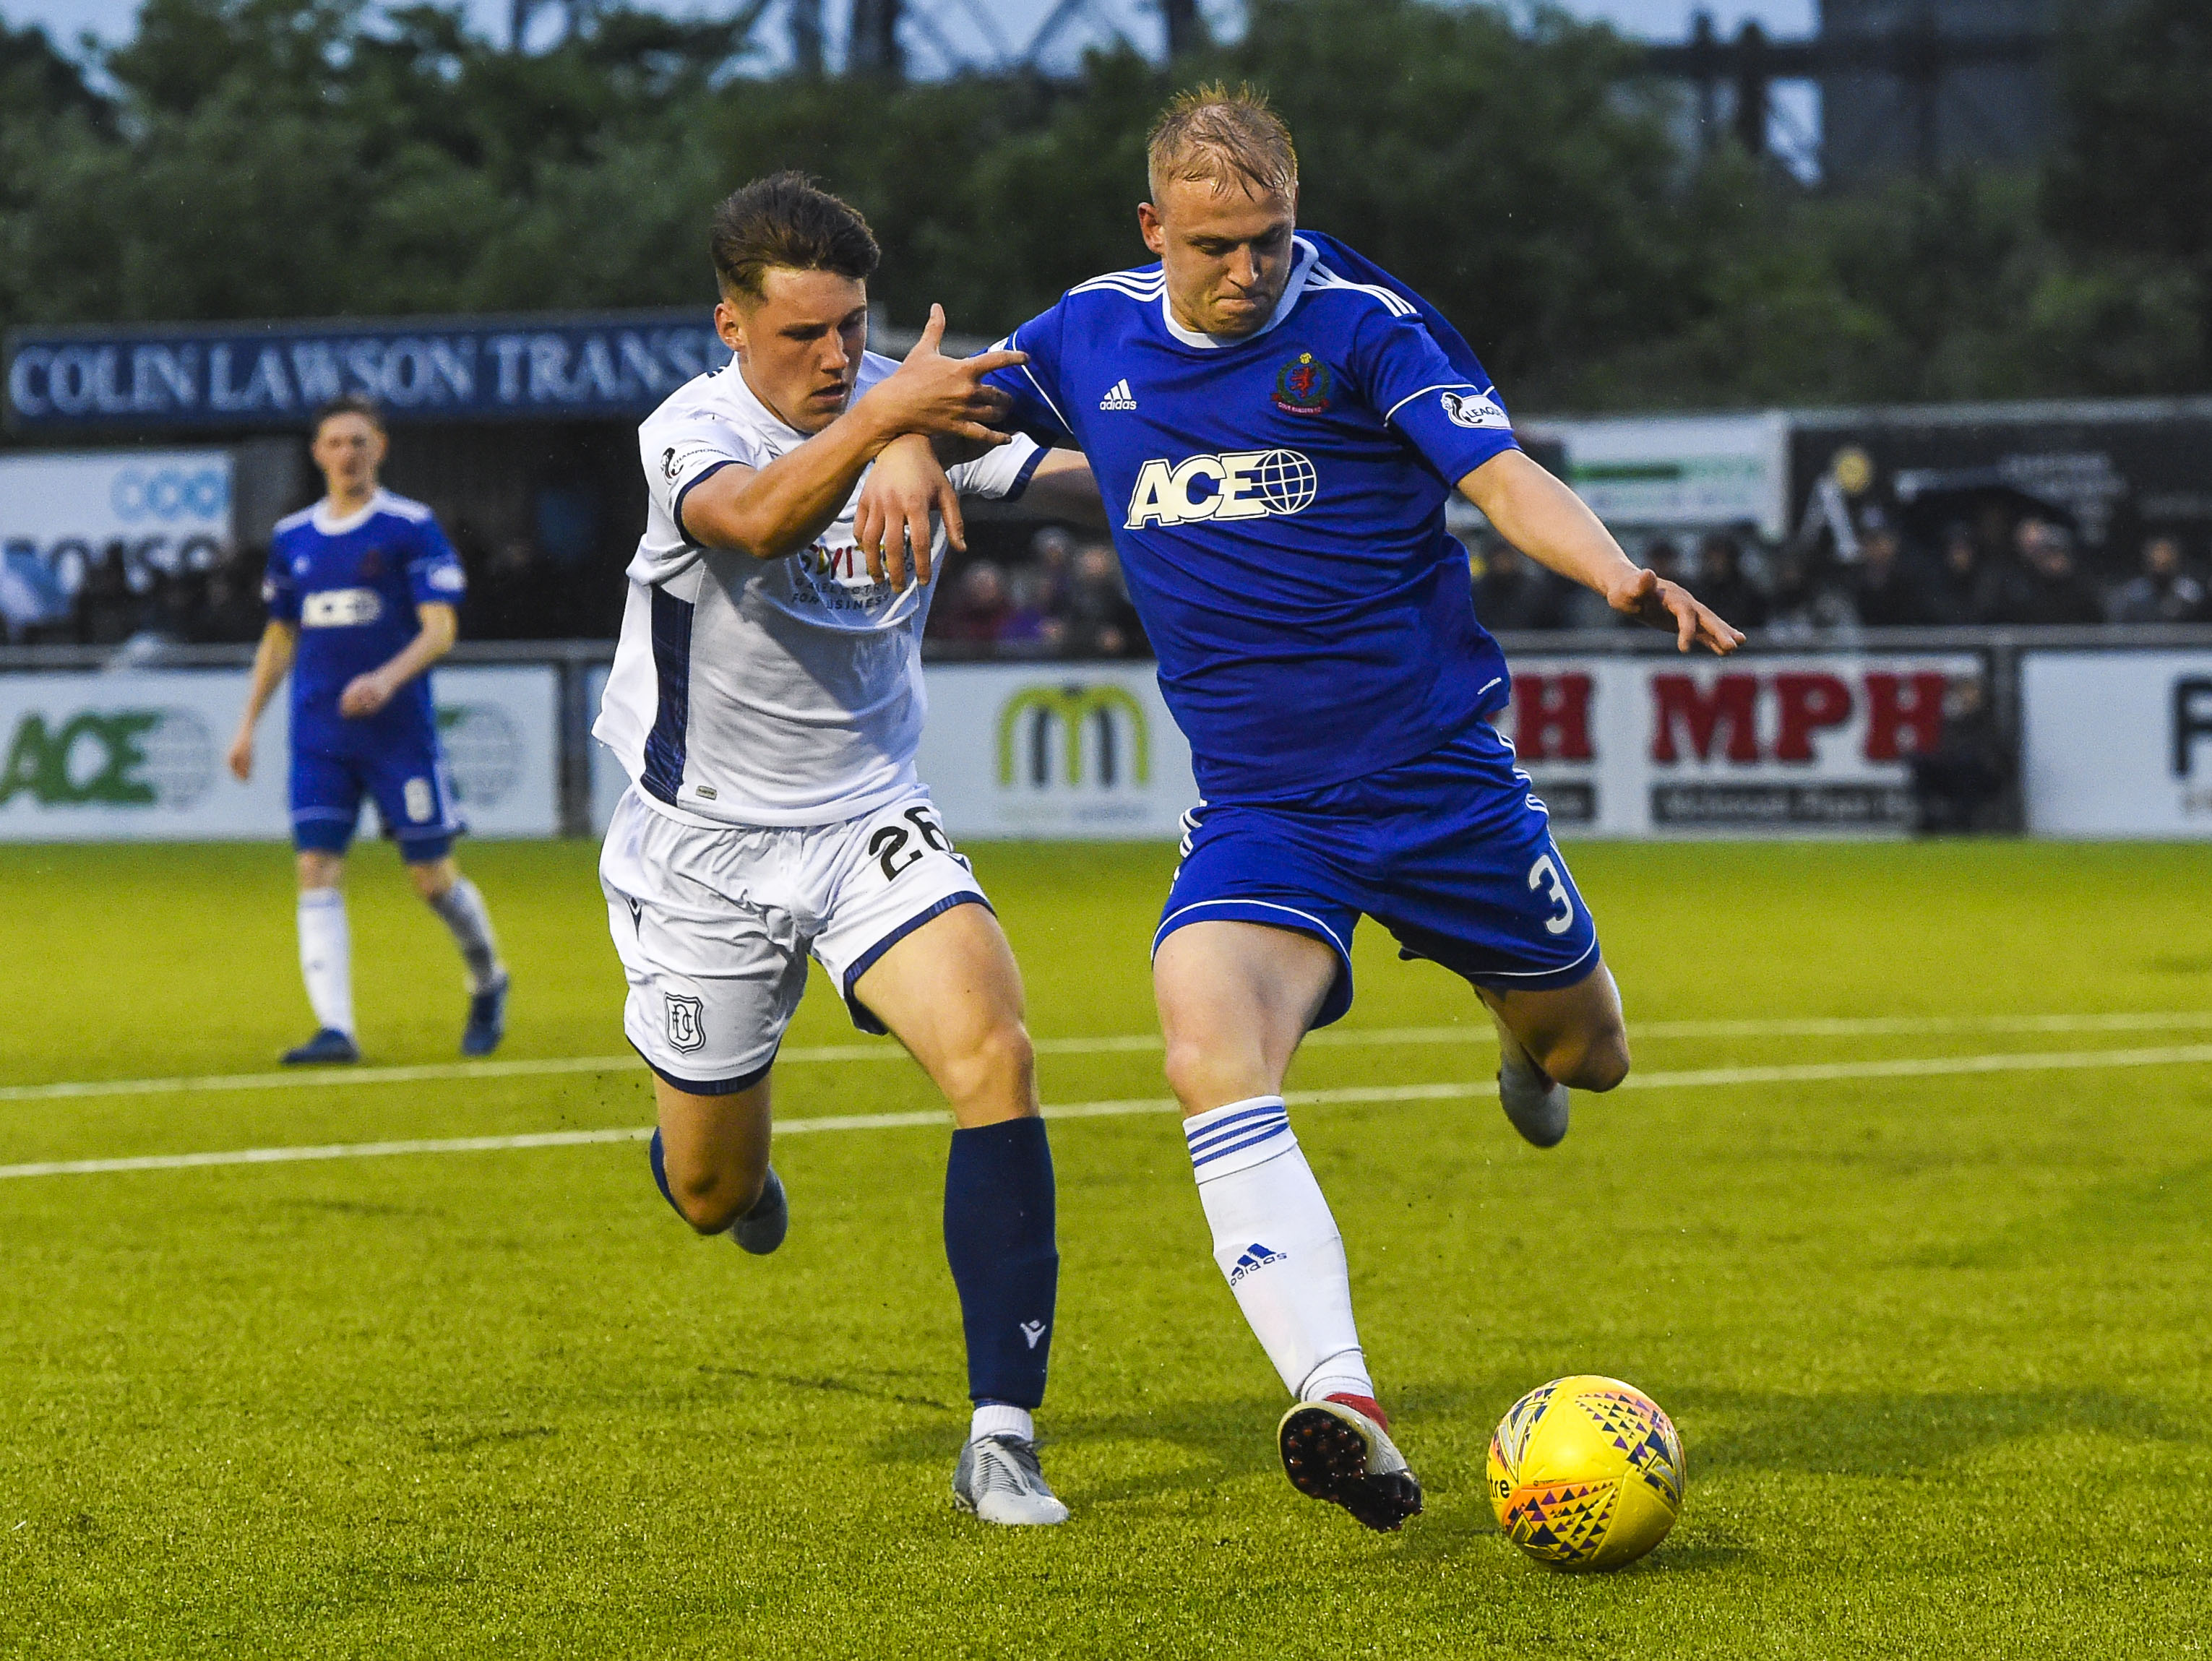 Cove Rangers Harry Milne (right) and Josh Mulligan in action.